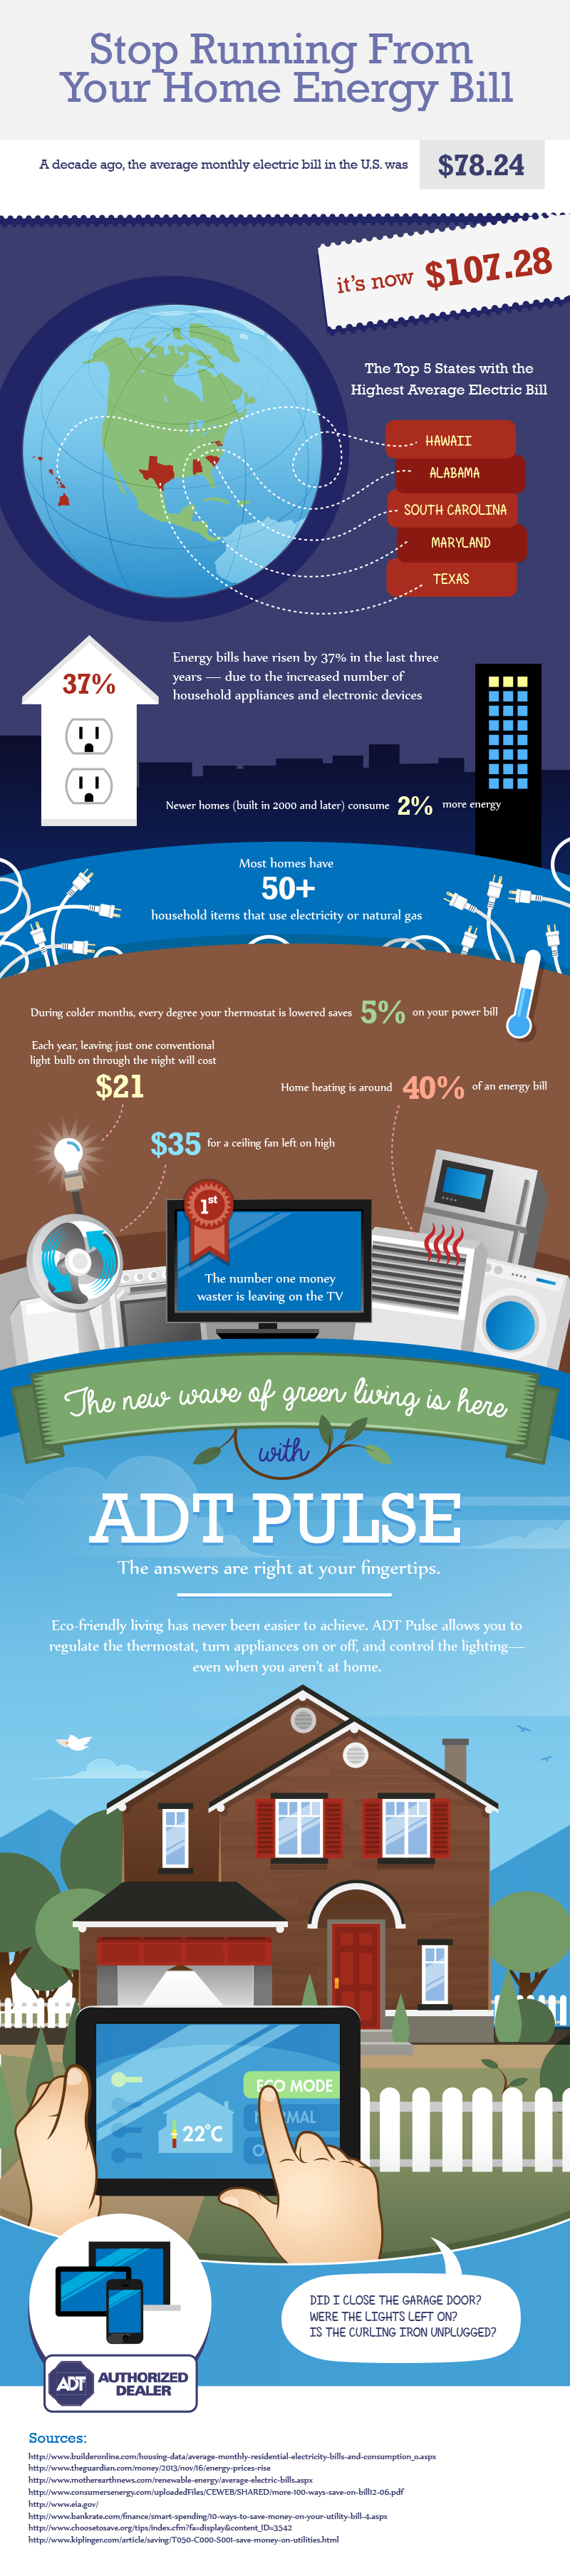 Save Energy with ADT Pulse